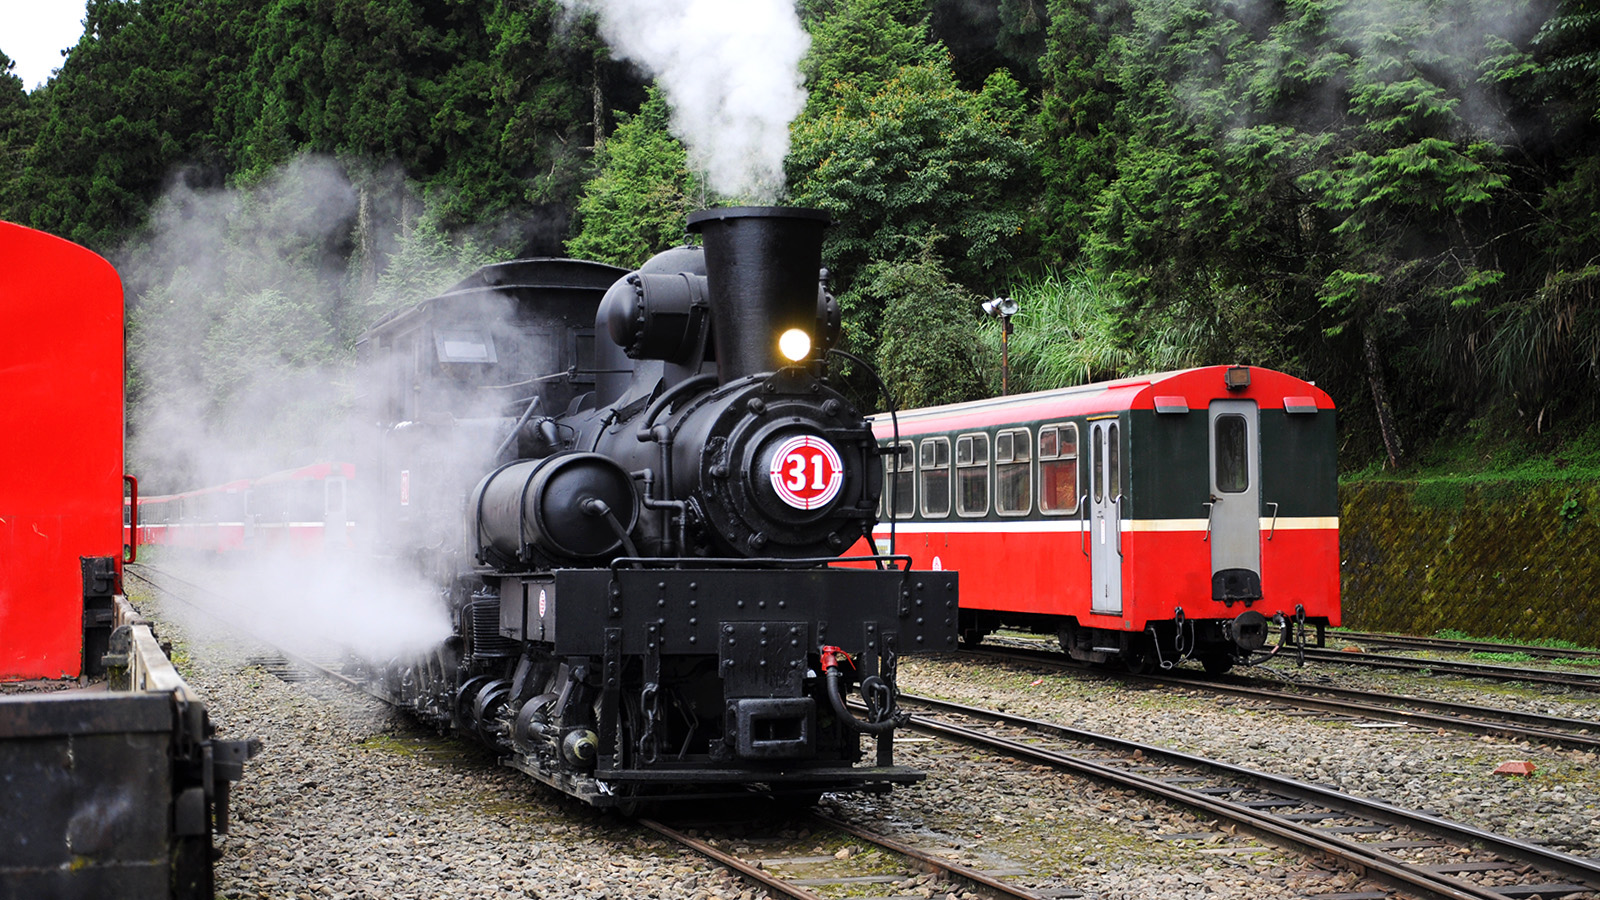 In Alishan, ride Taiwan's mountain railway over a century